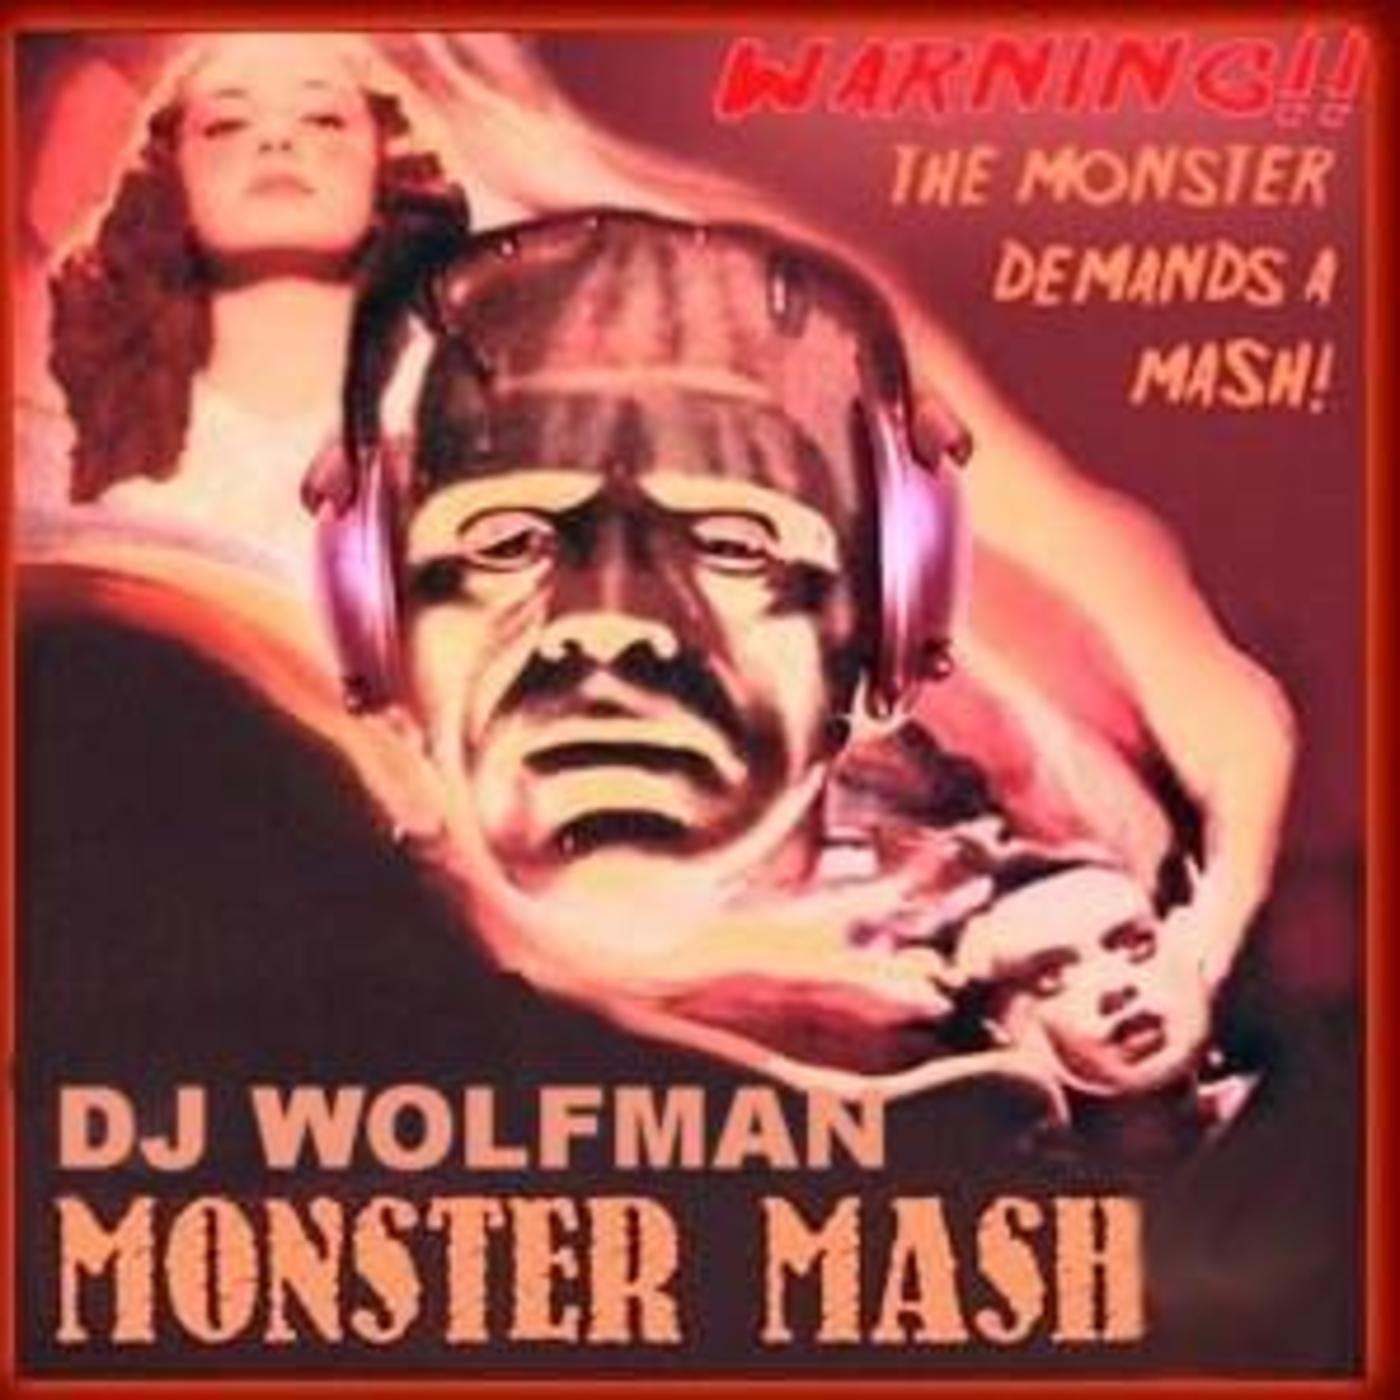 DJ Wolfman's  Monstercasts